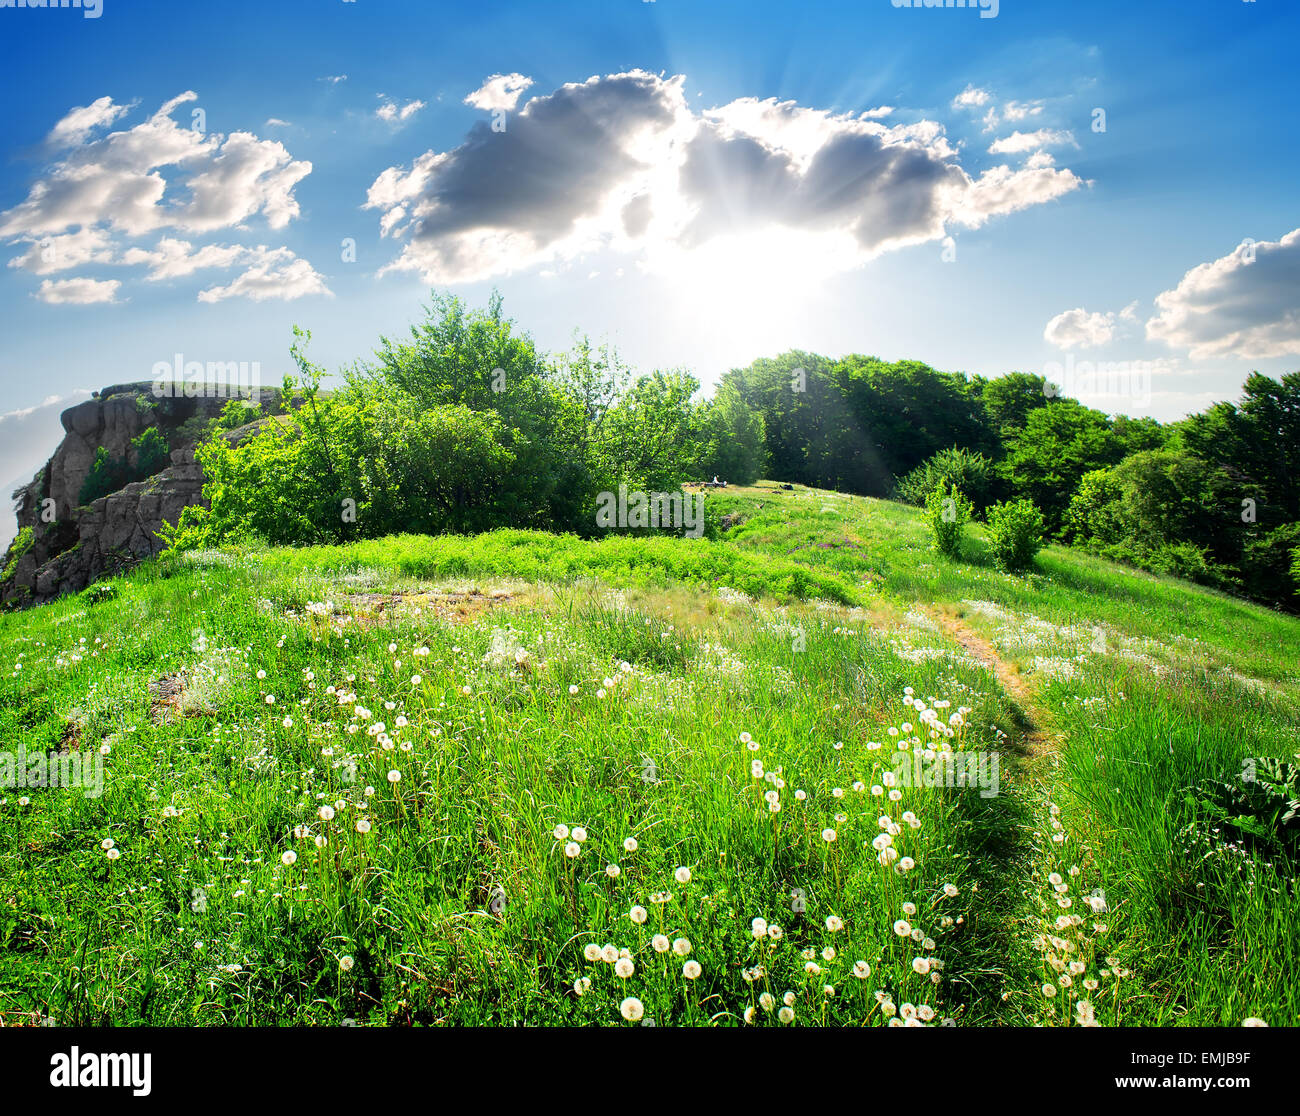 Meadow of dandelions on the top of a mountain - Stock Image